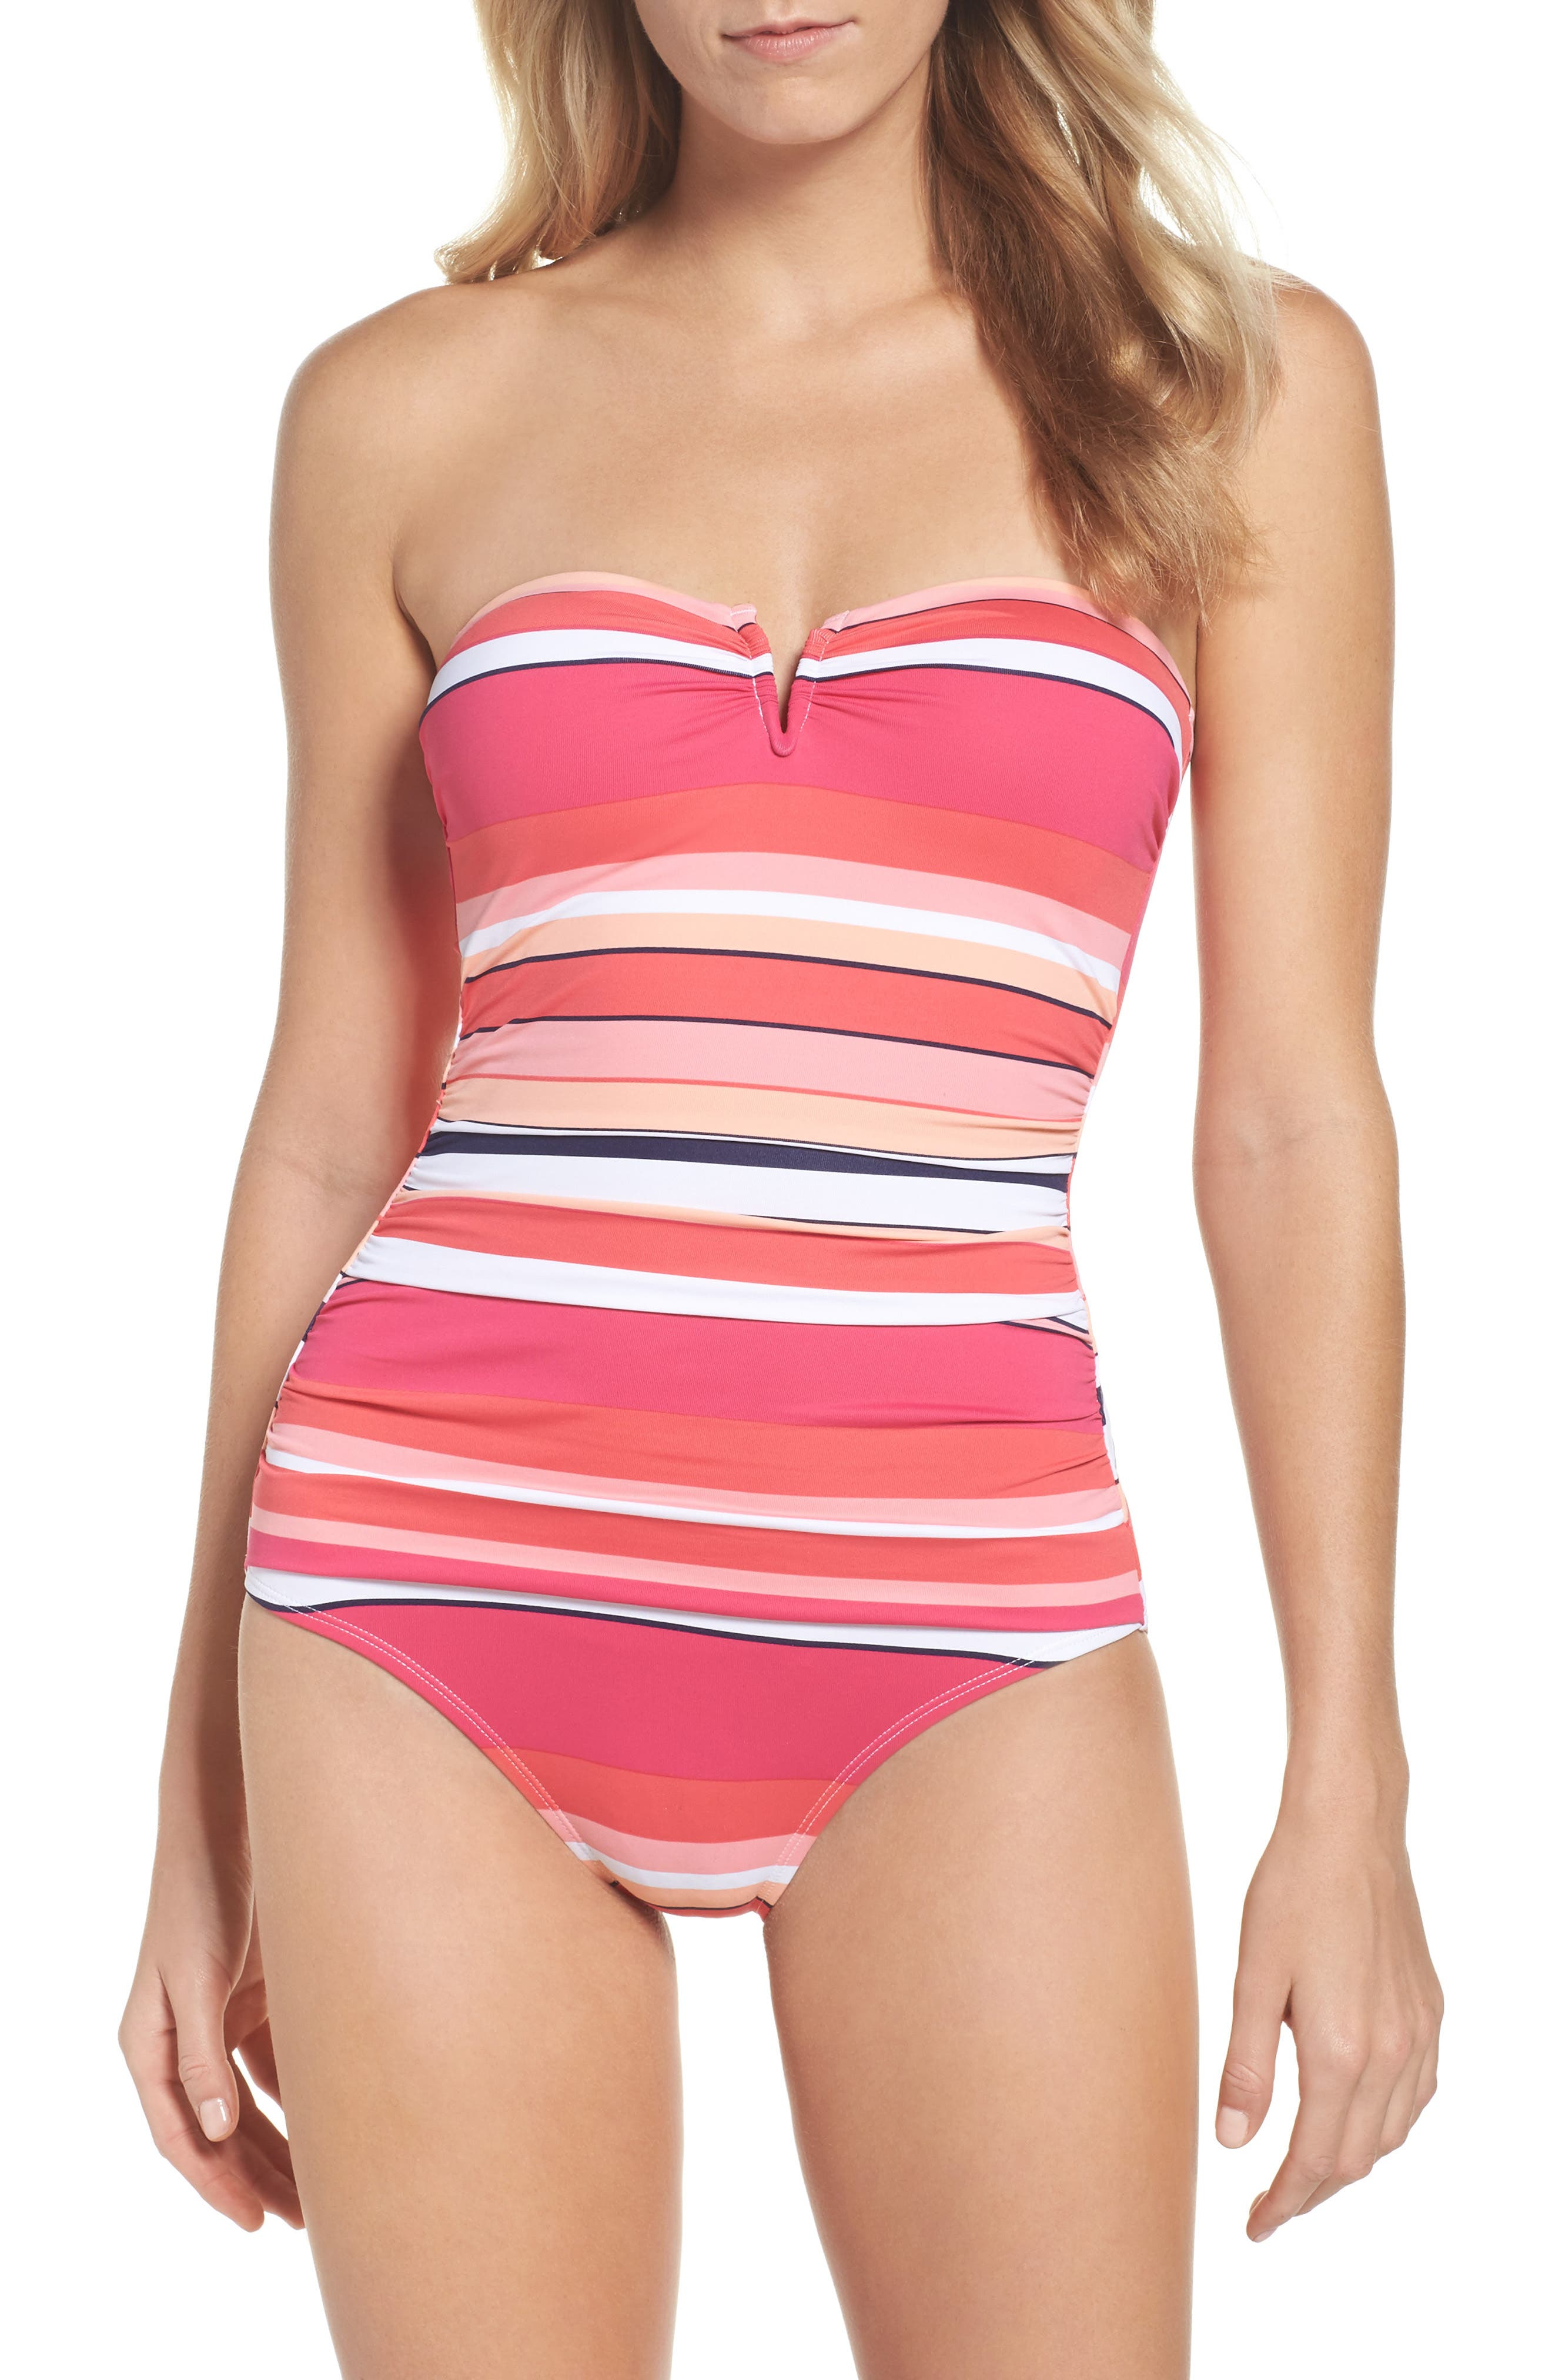 Petals of Paradise One-Piece Swimsuit,                         Main,                         color, Coral Glow